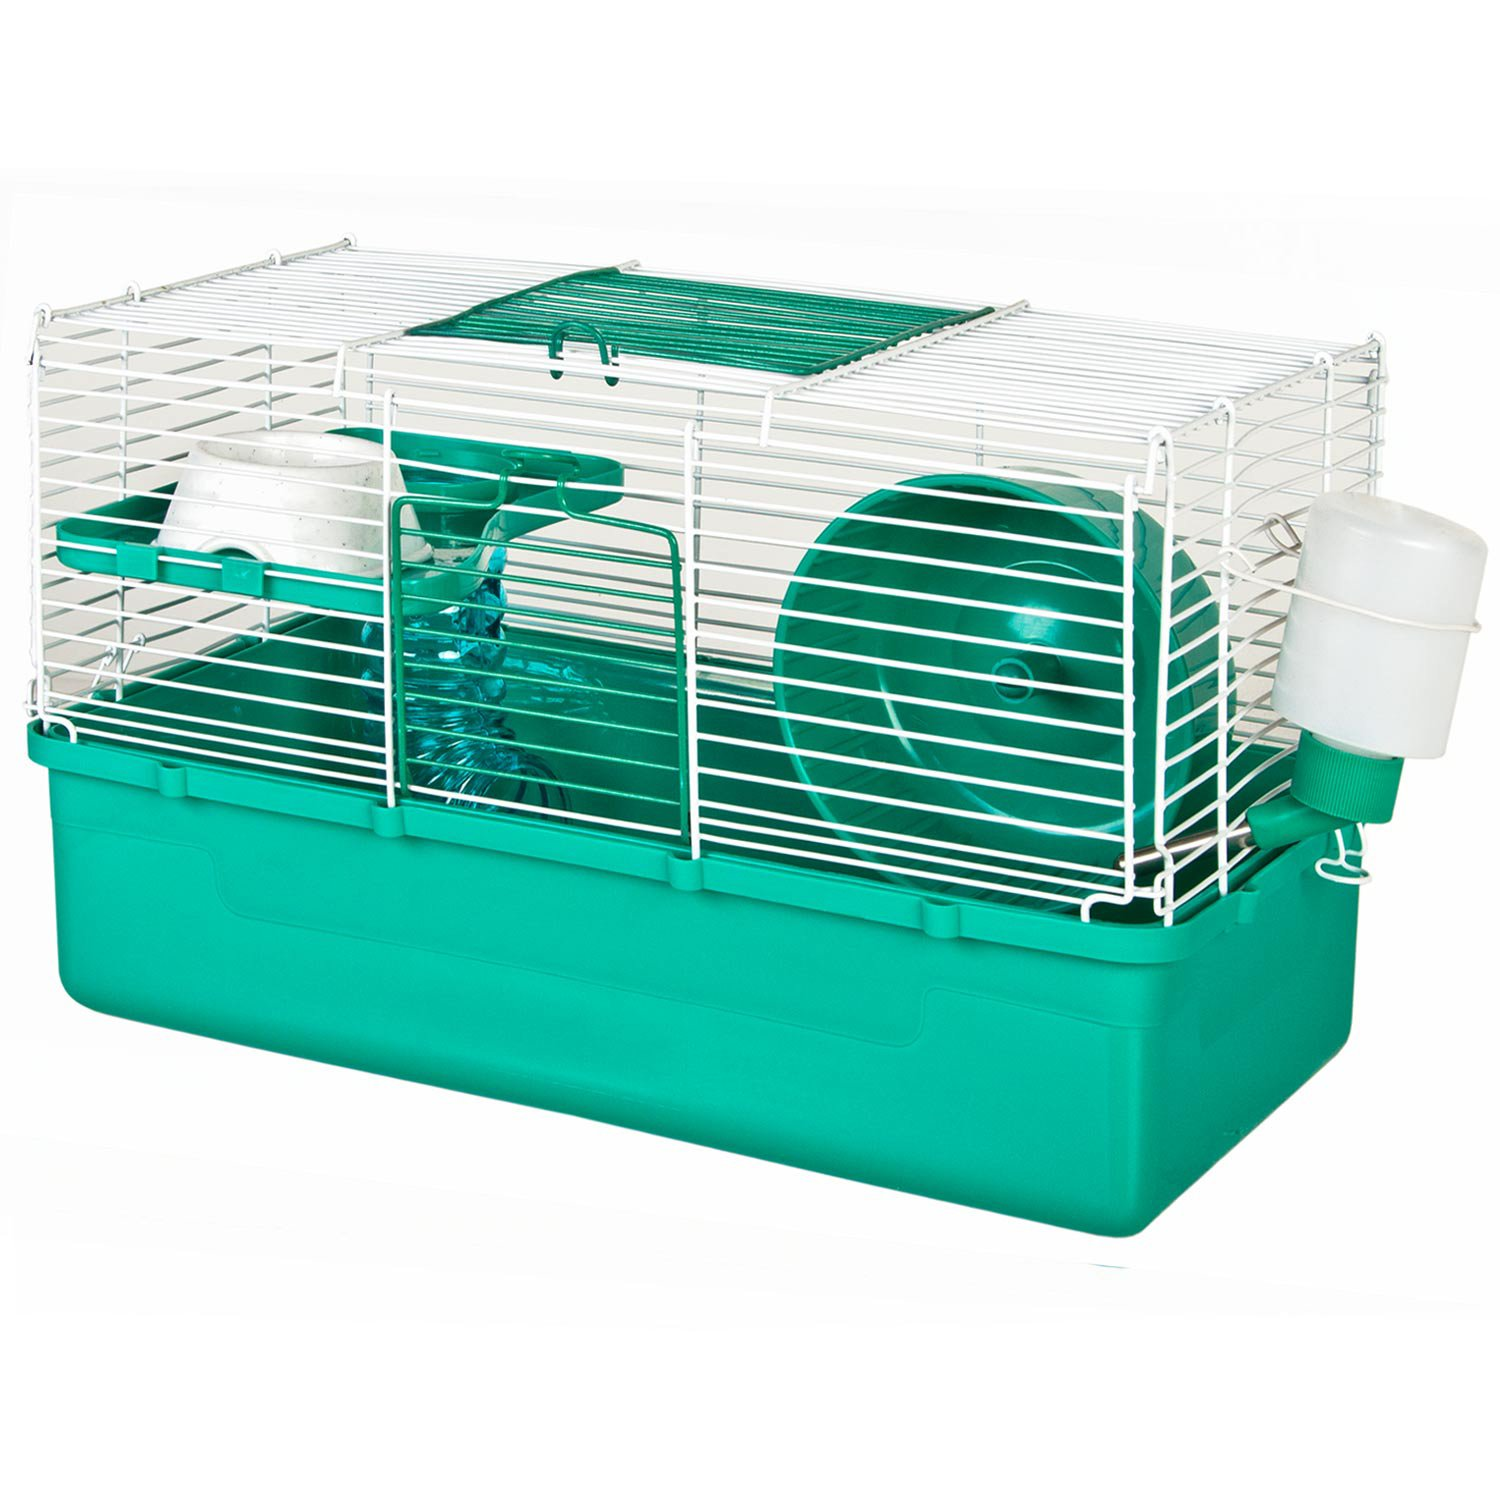 Ware Home Sweet Home Teal 1 Story Hamster Cage 15 5 In Blue White Hamster Cage Hamster Cages Big Bird Cage